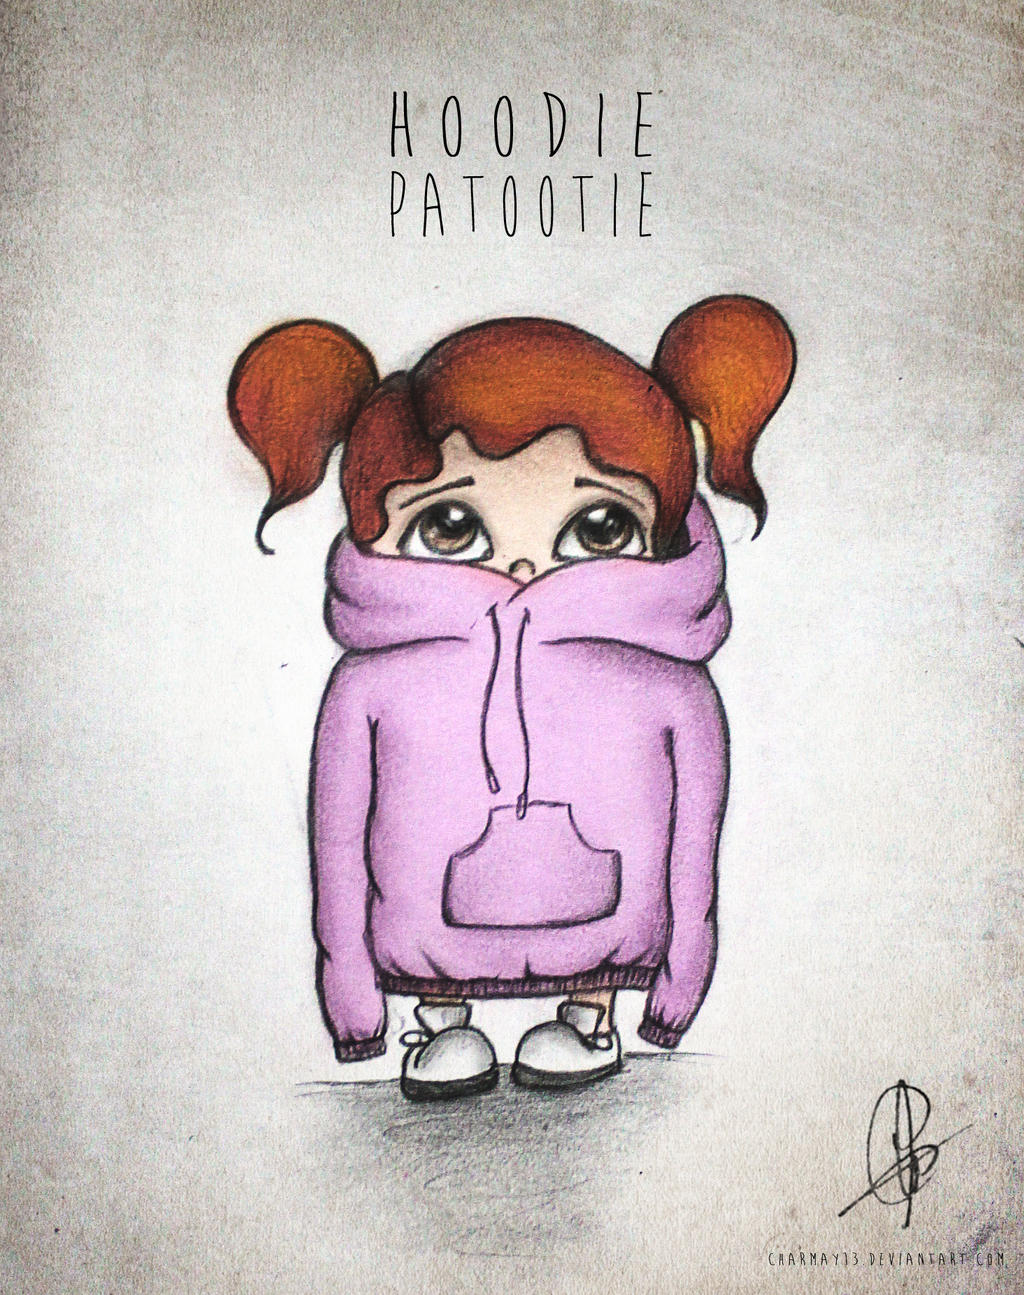 Hoodie Patootie (deviantart) by charmay13